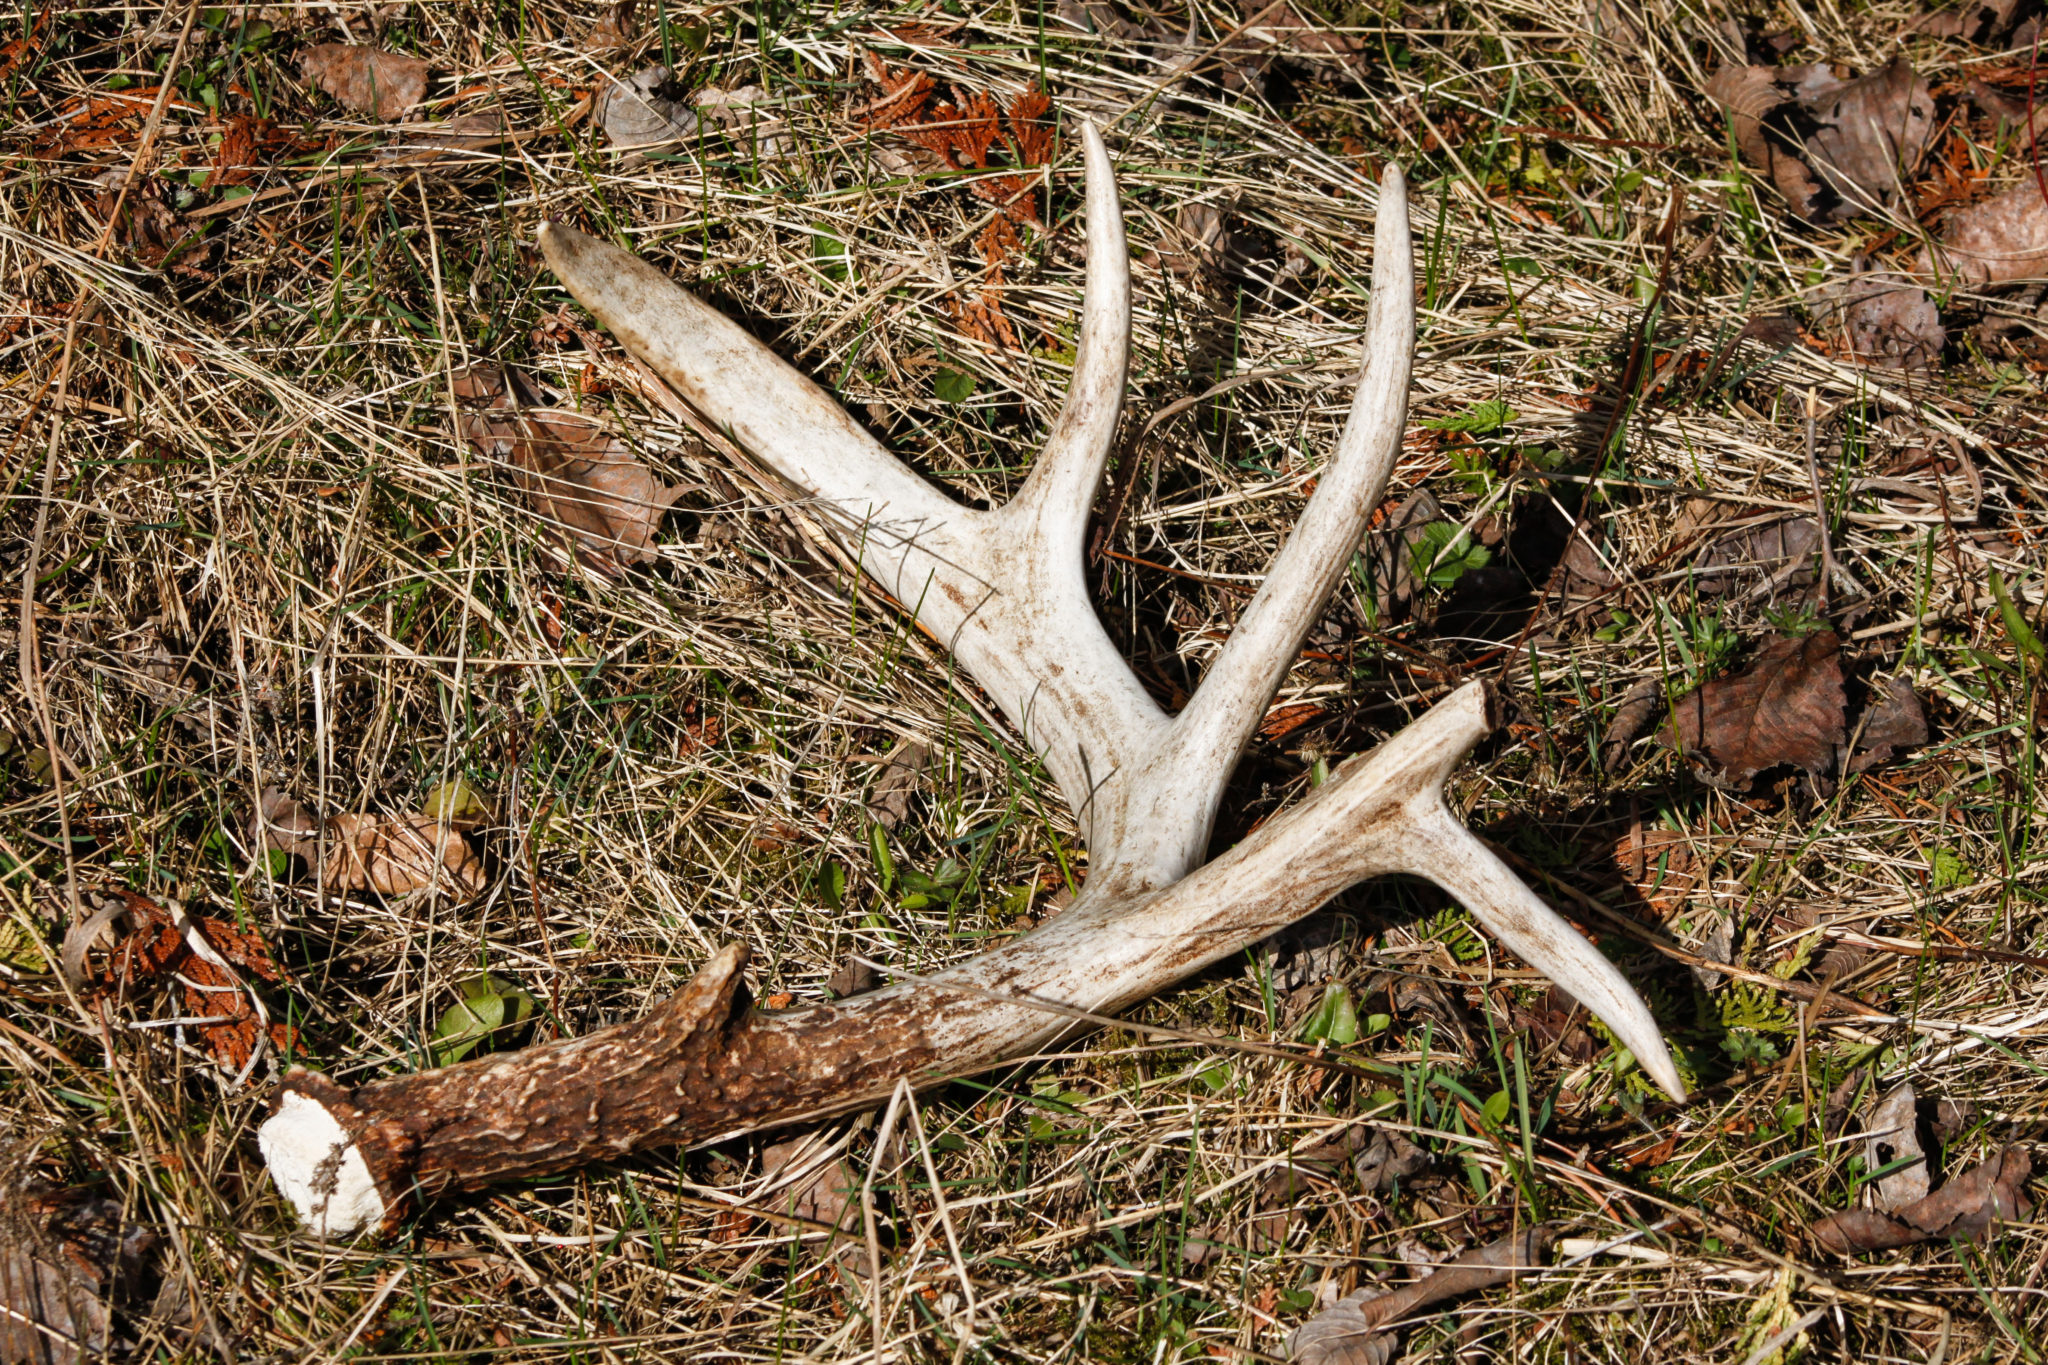 Antler on ground